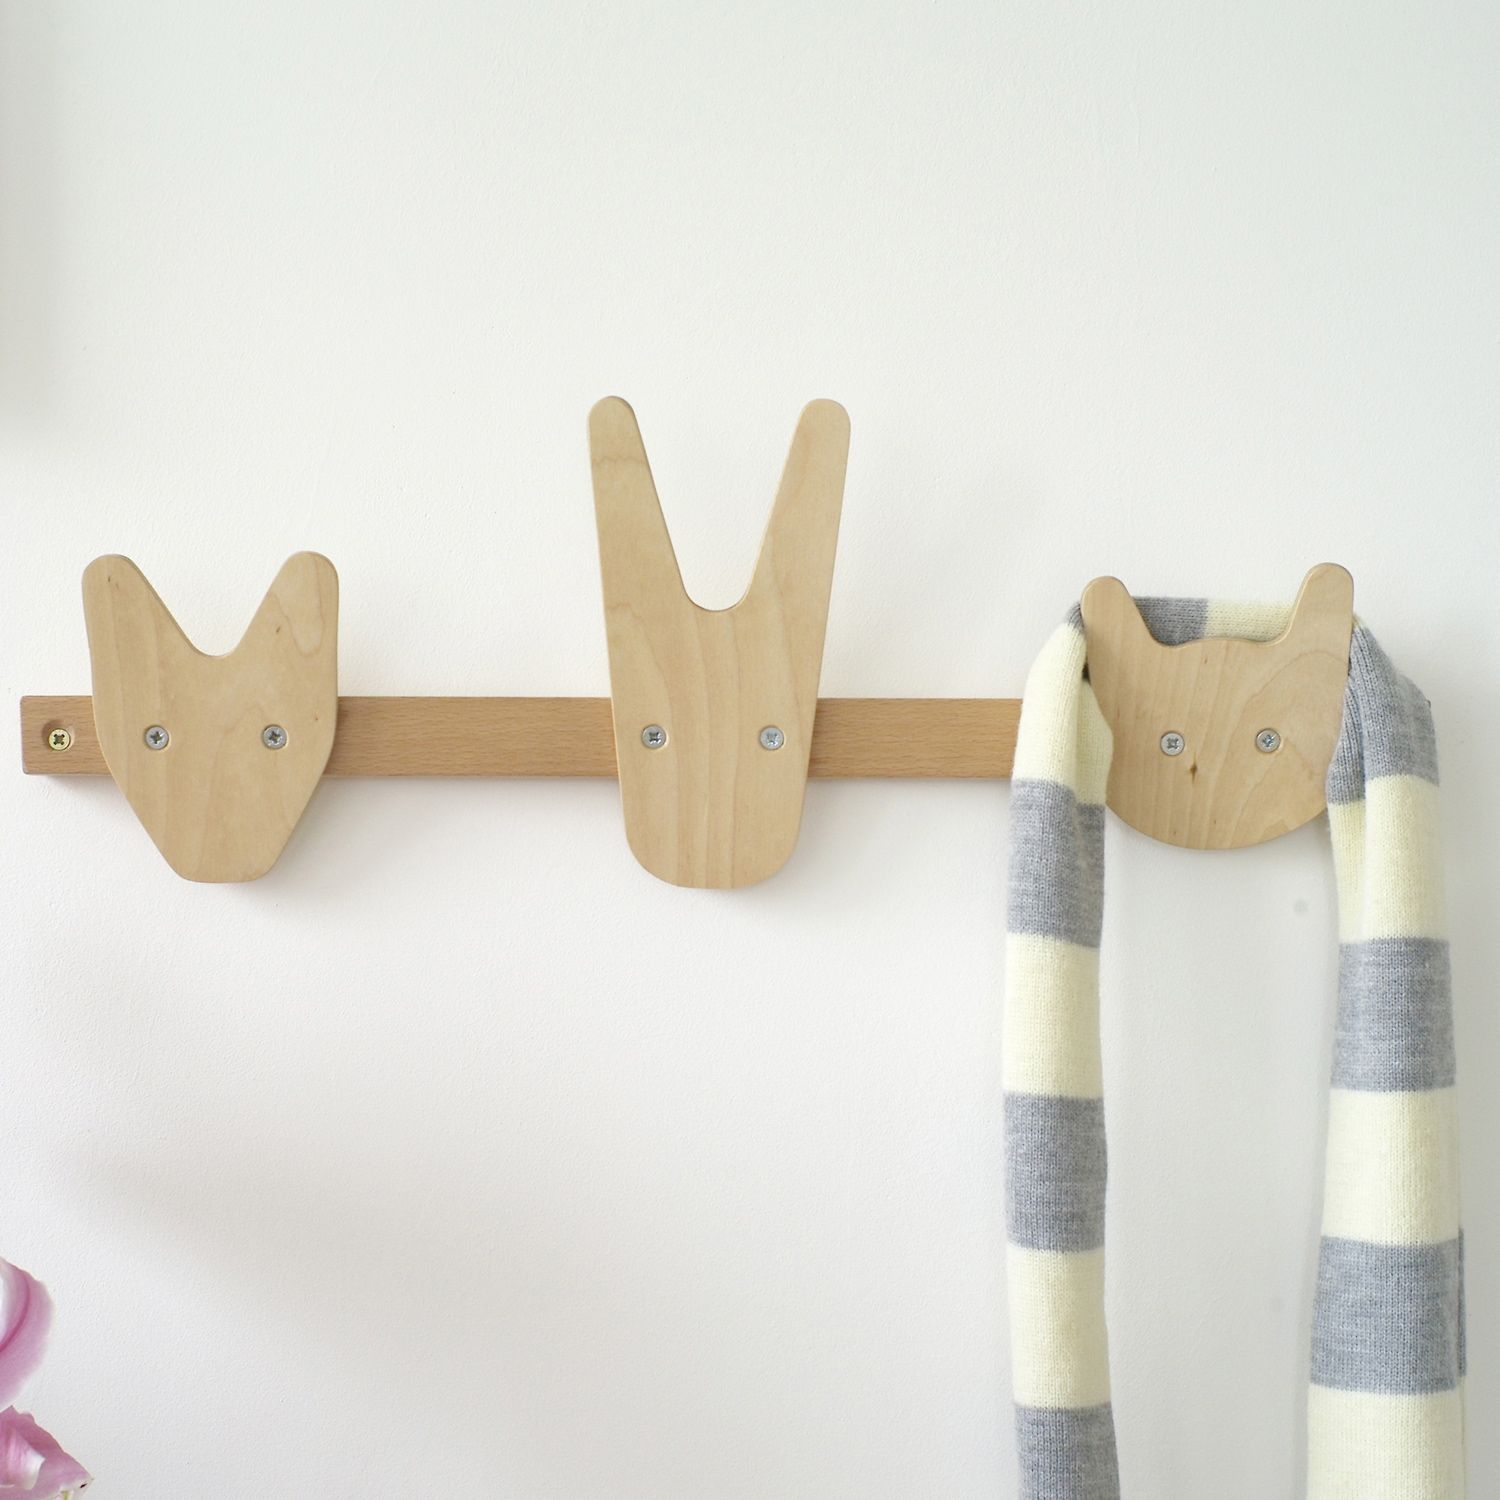 Cool coat hooks 1500x1500 the animals of whittling wood coat hooks the animals of whittling wood coat hooks contemporary kids decor other metro by the oak room amipublicfo Choice Image